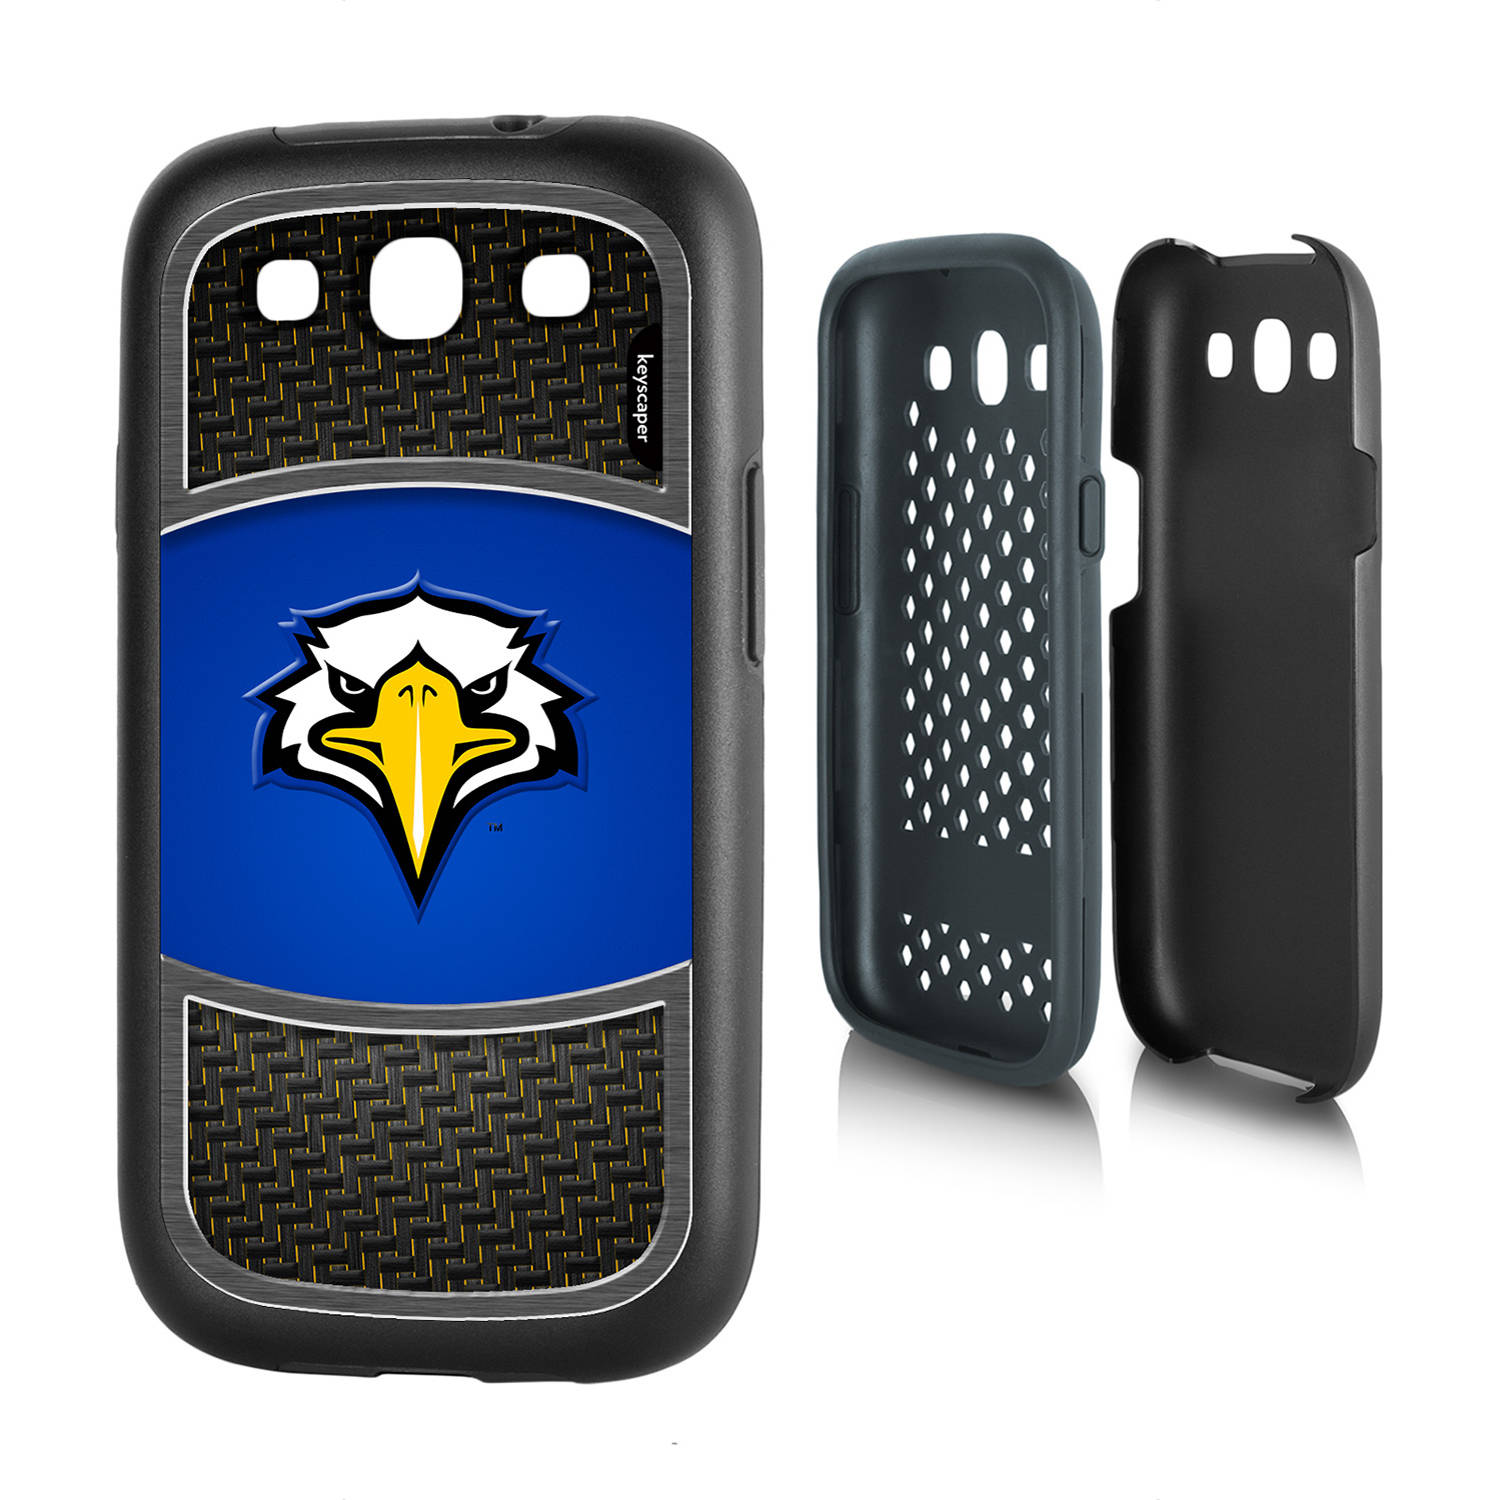 Morehead State Eagles Galaxy S3 Rugged Case